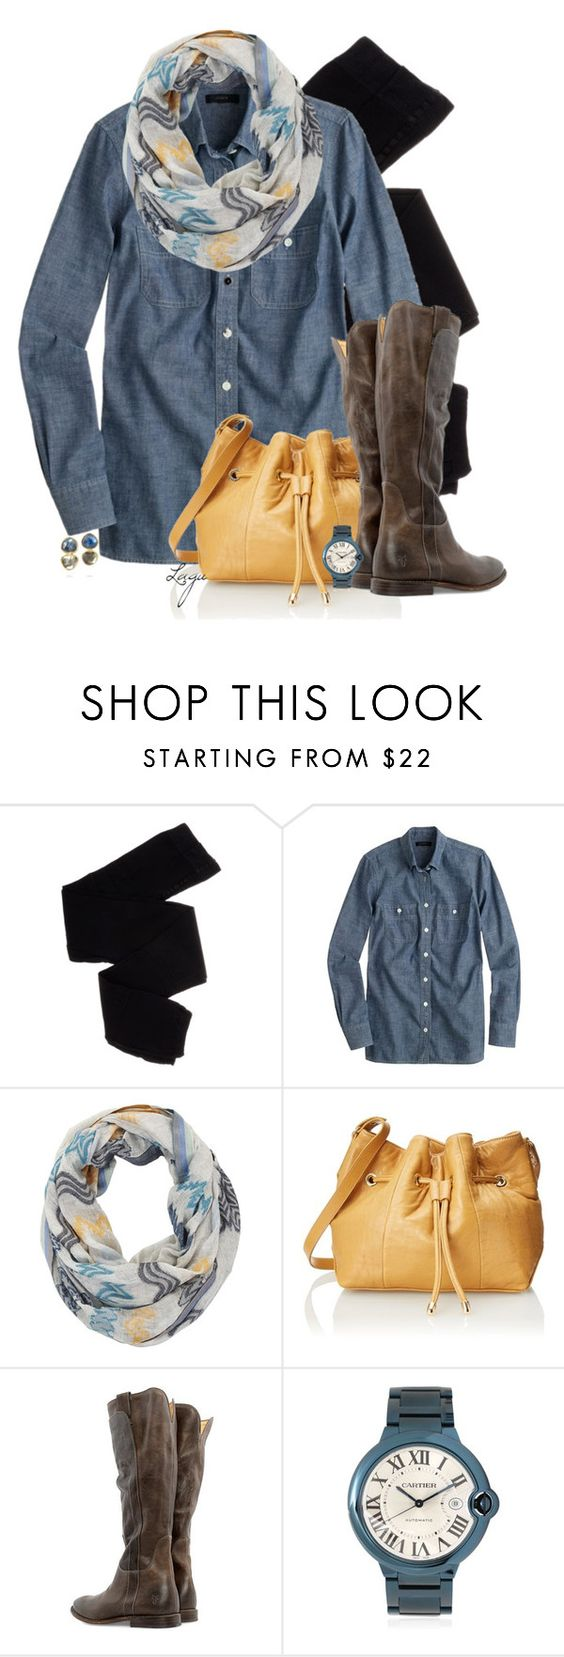 Casual Thanksgiving by lagu on Polyvore featuring J.Crew, Trasparenze, Frye, Lauren Merkin, MAD, BROOKE GREGSON and BCBGMAXAZRIA